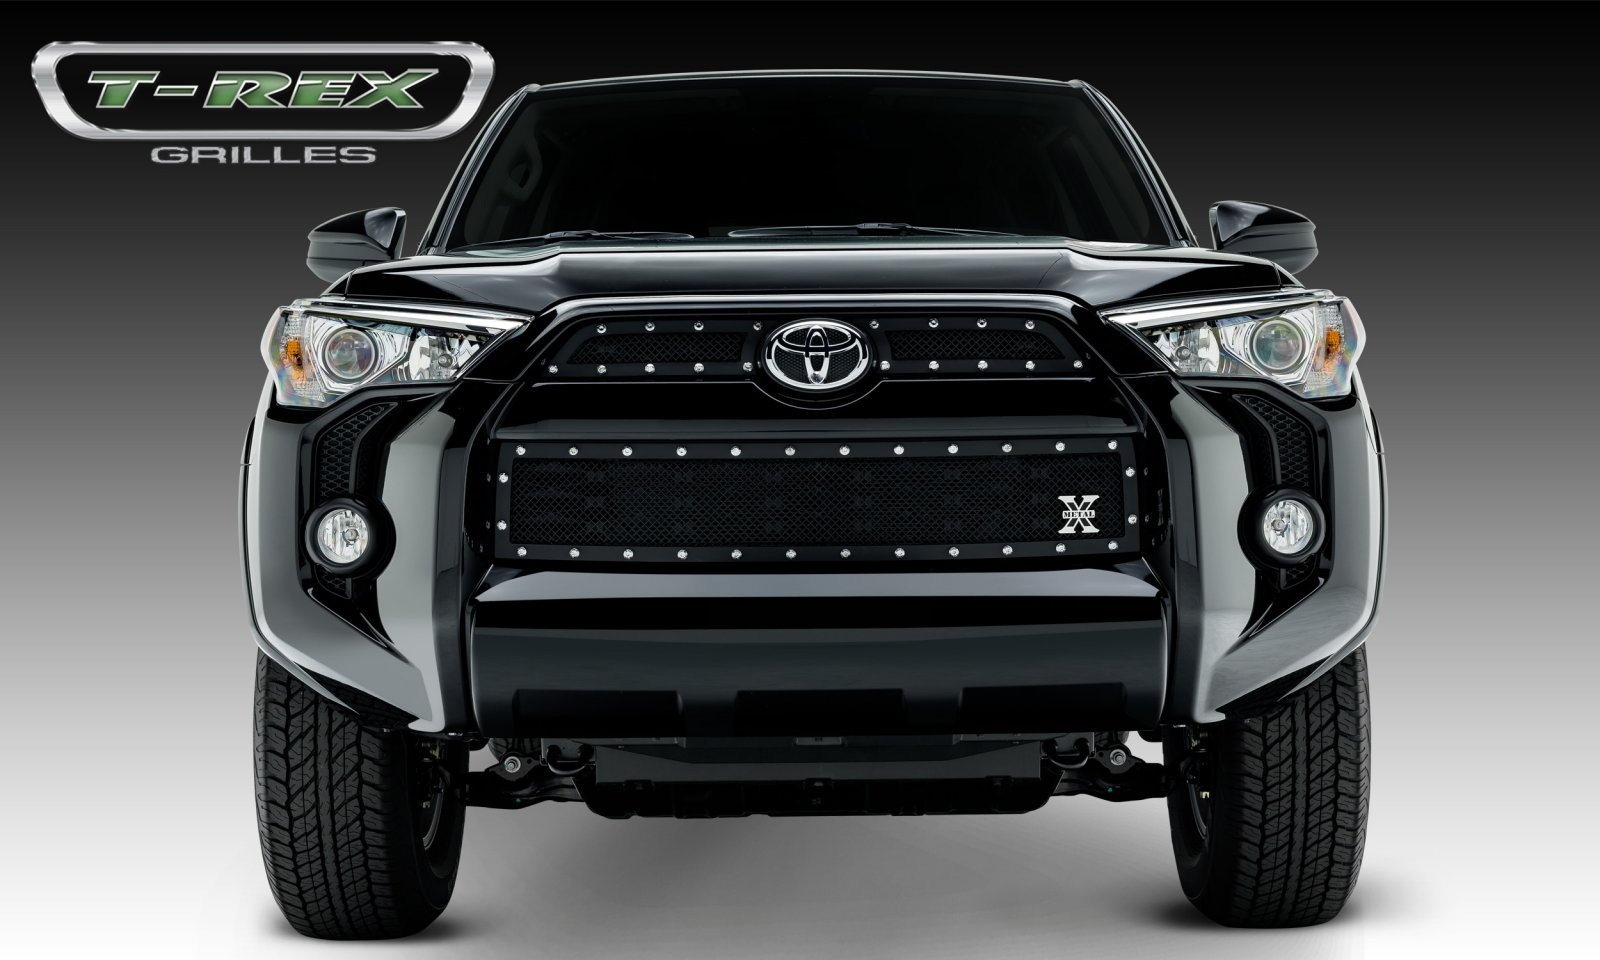 4 Runner X-Metal, Formed Mesh Grille, Main & Bumper Kit, Overlay, 3 Pc's 2014+ (Ships Free)